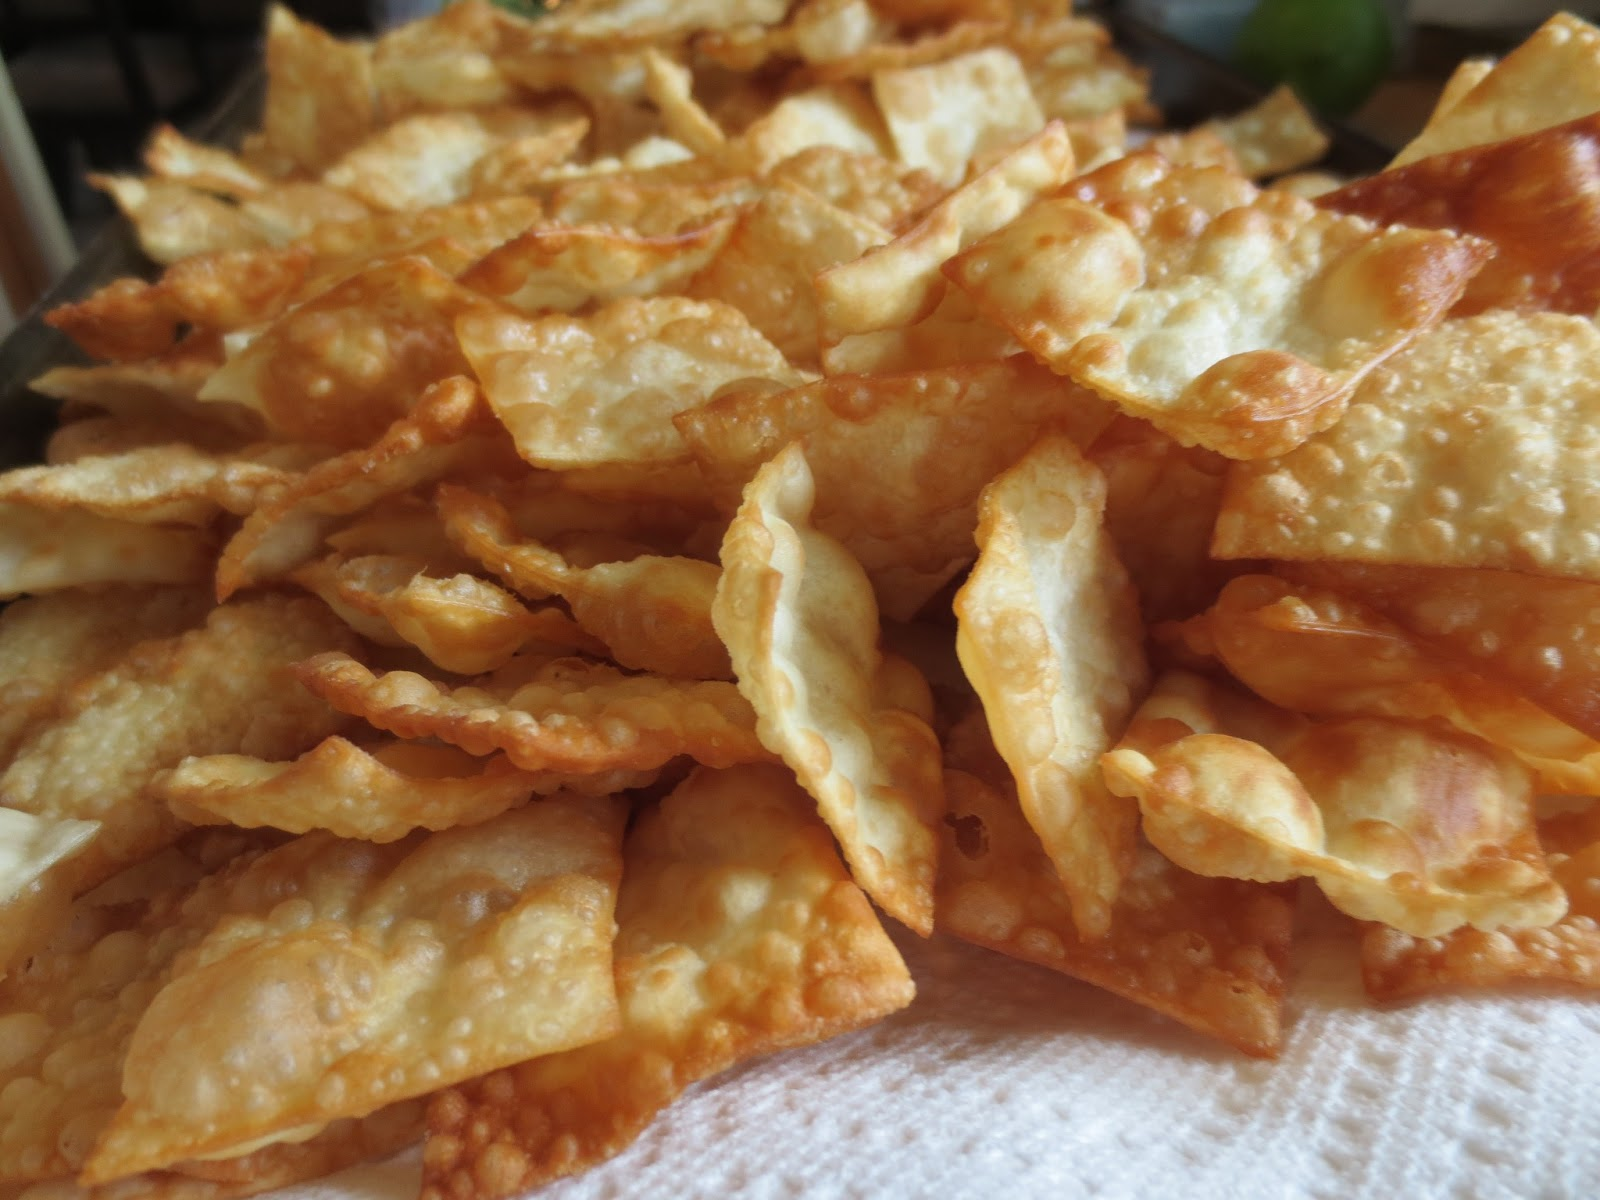 Fried Wonton Chips The owl with the goblet: crab dip with wonton chips